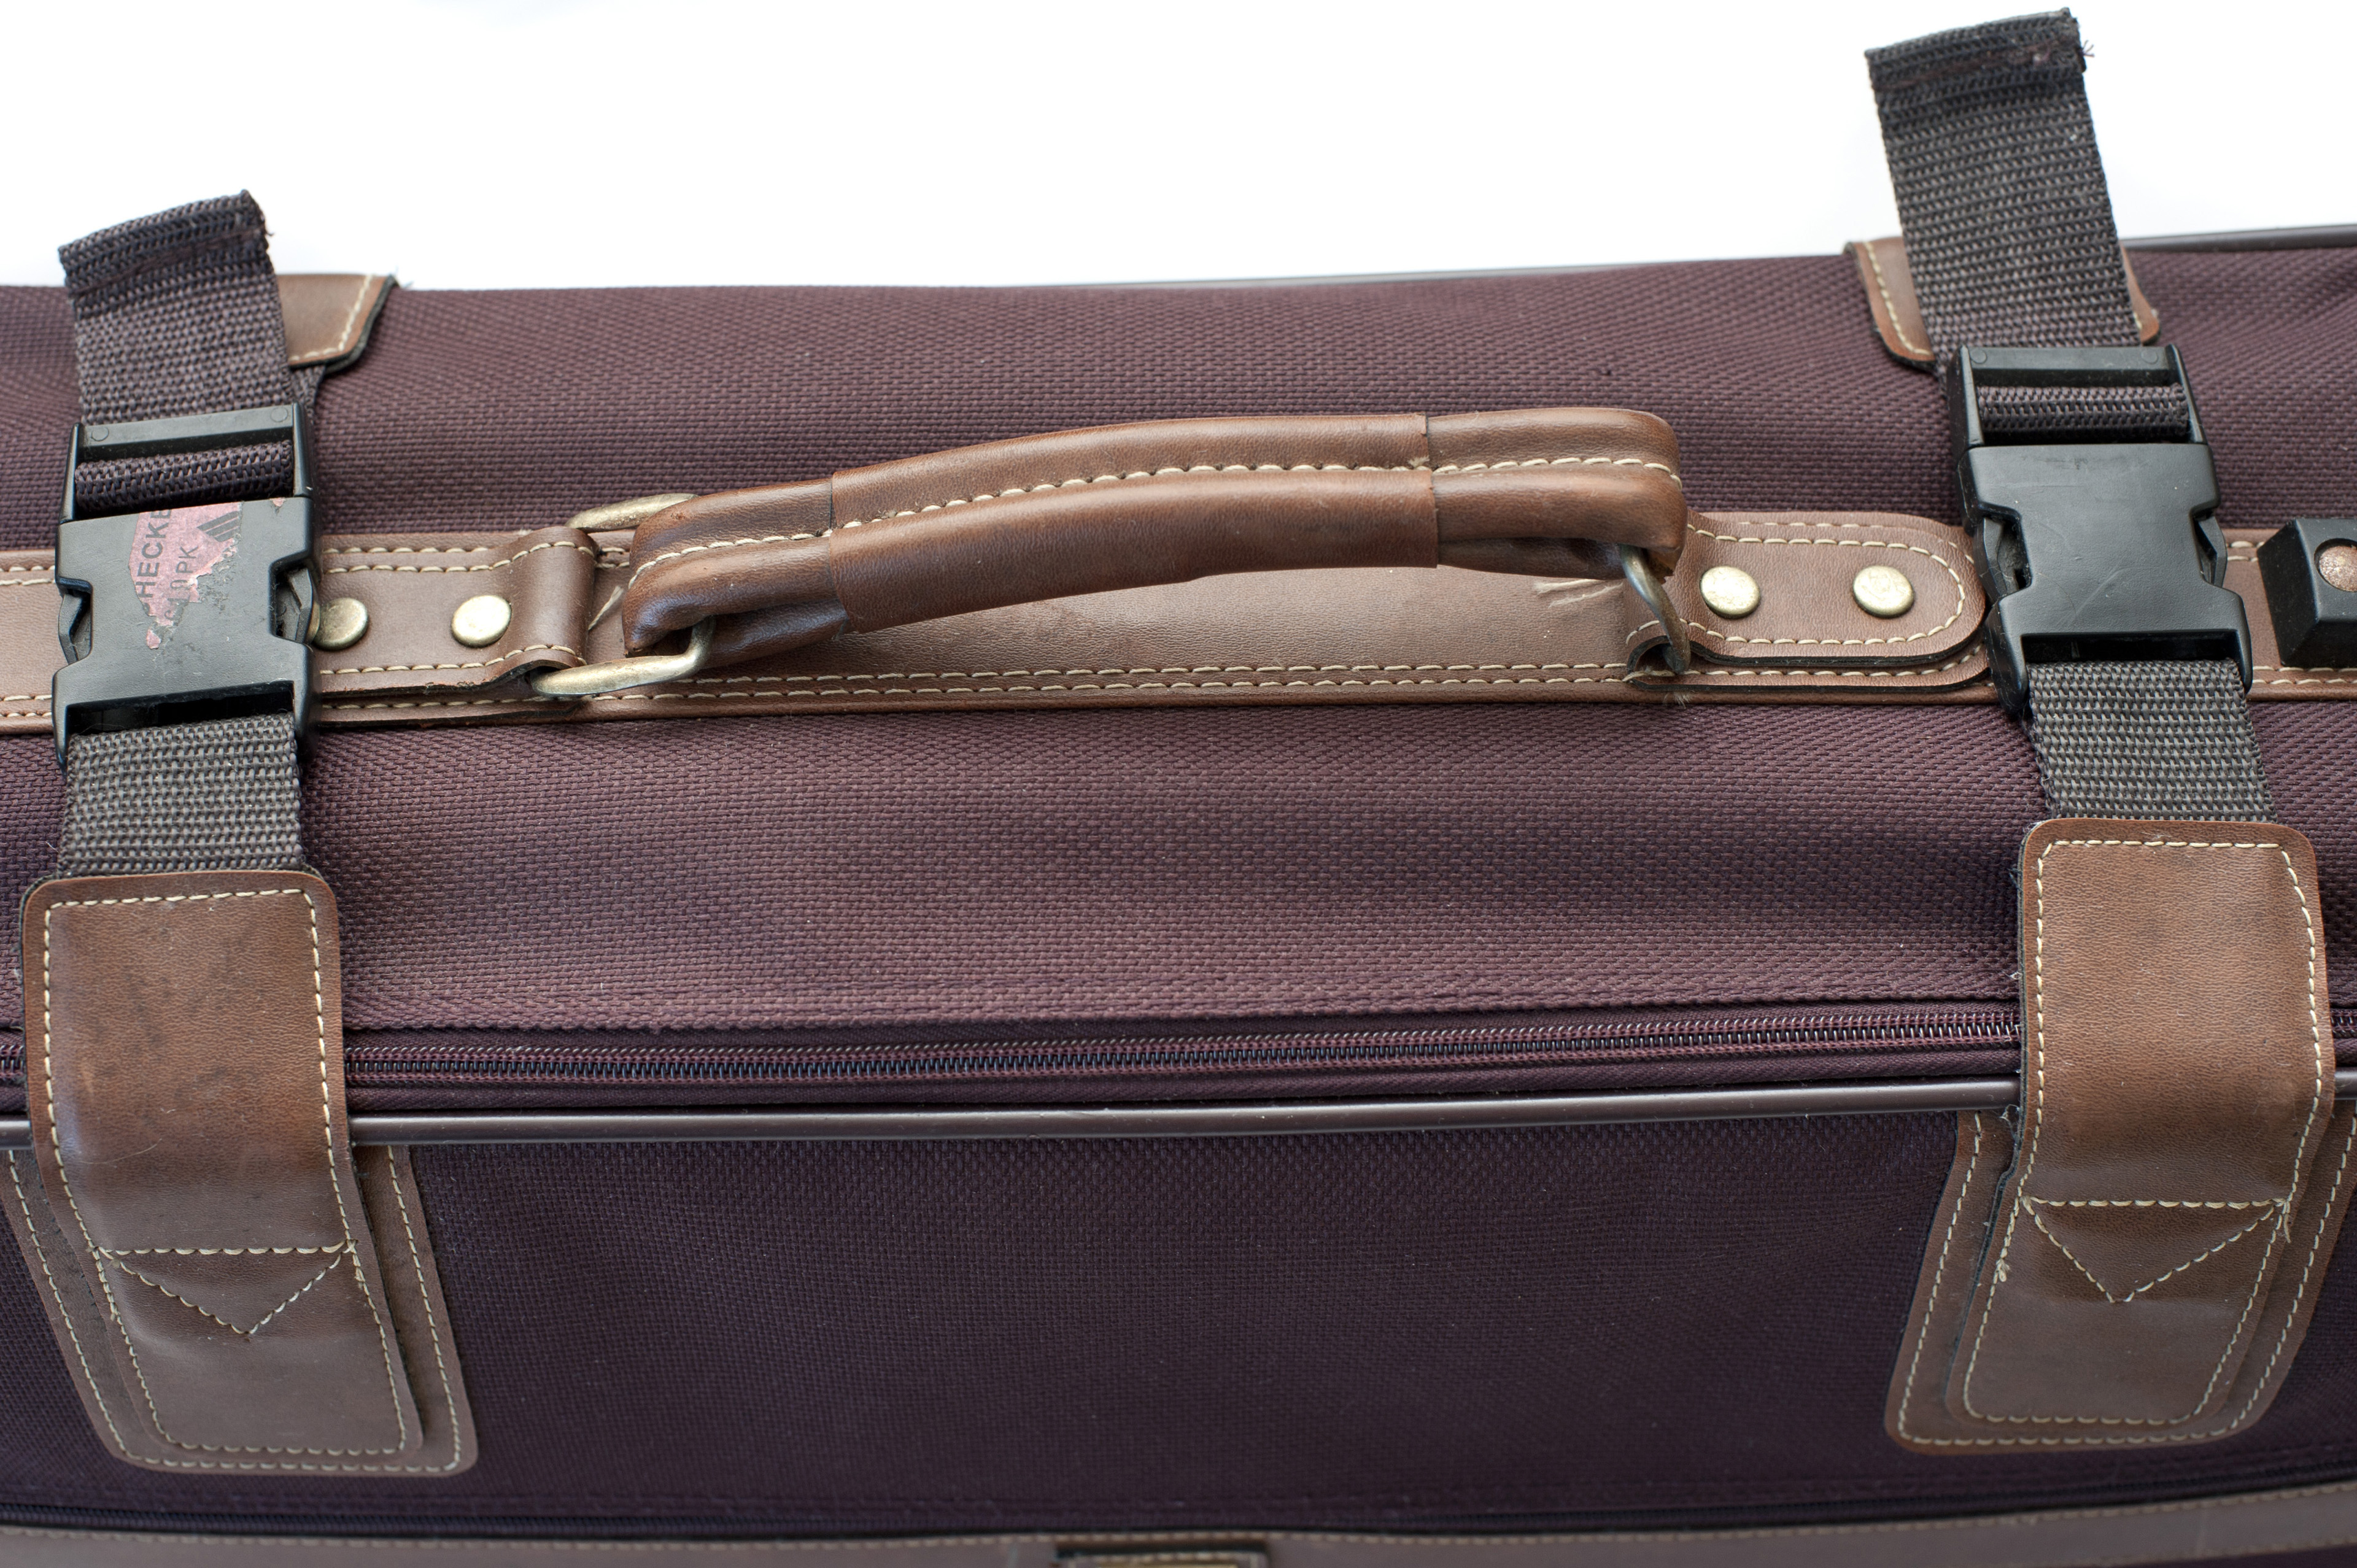 Close Up of Handle on Burgundy Cloth Suitcase Secured with Clips